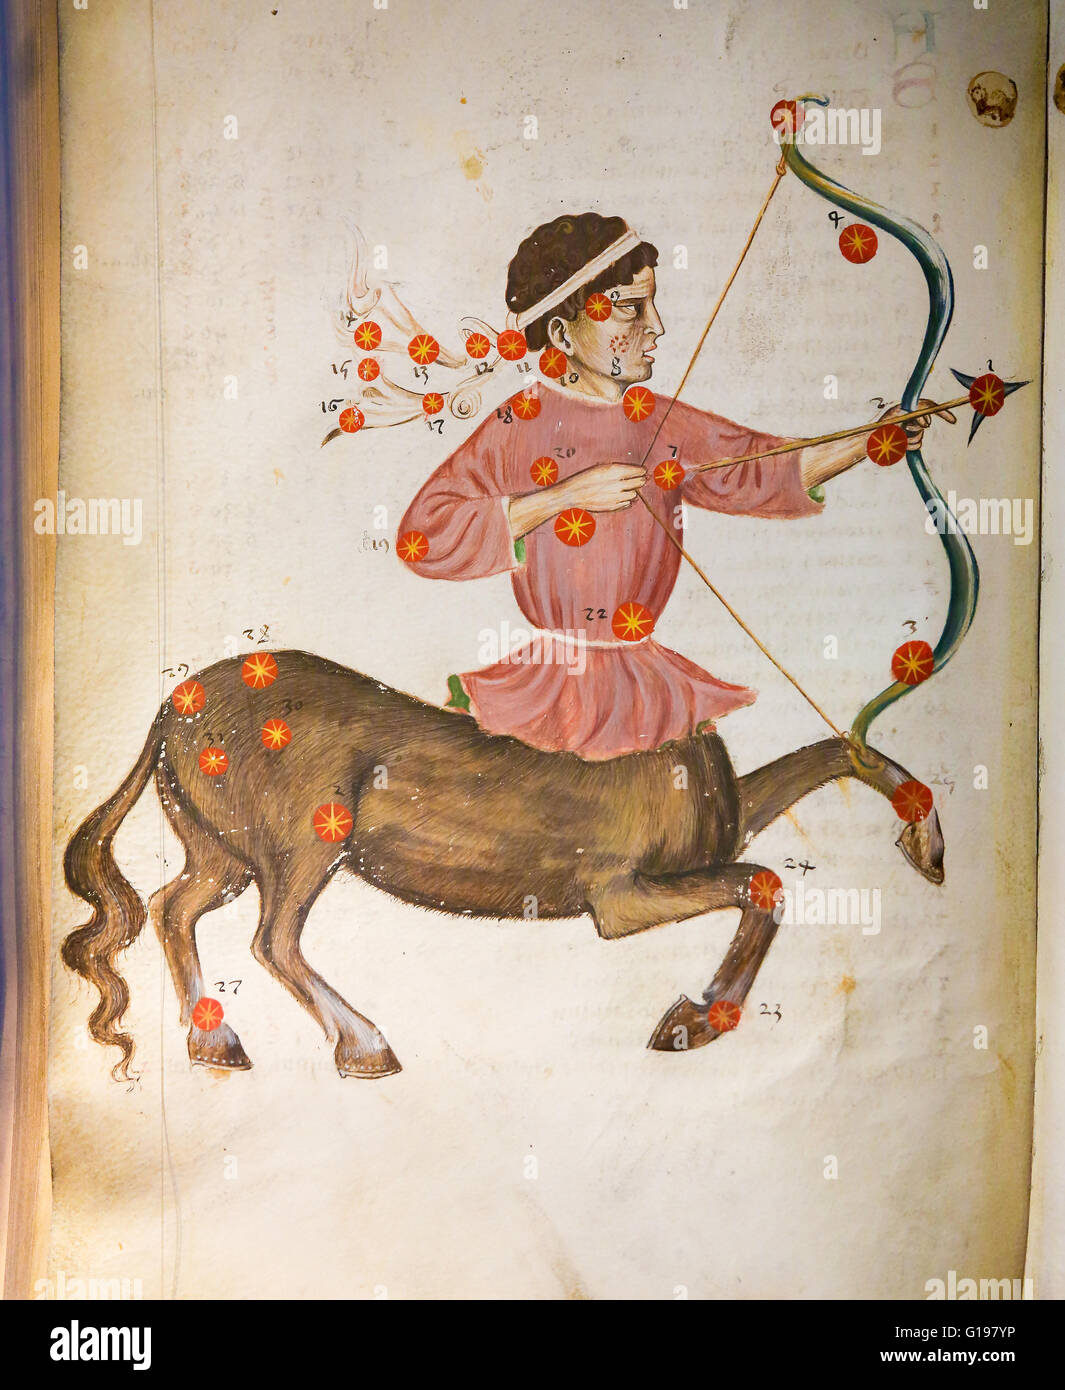 Depiction of the constellation Sagittarius in an antique astrology text - Stock Image